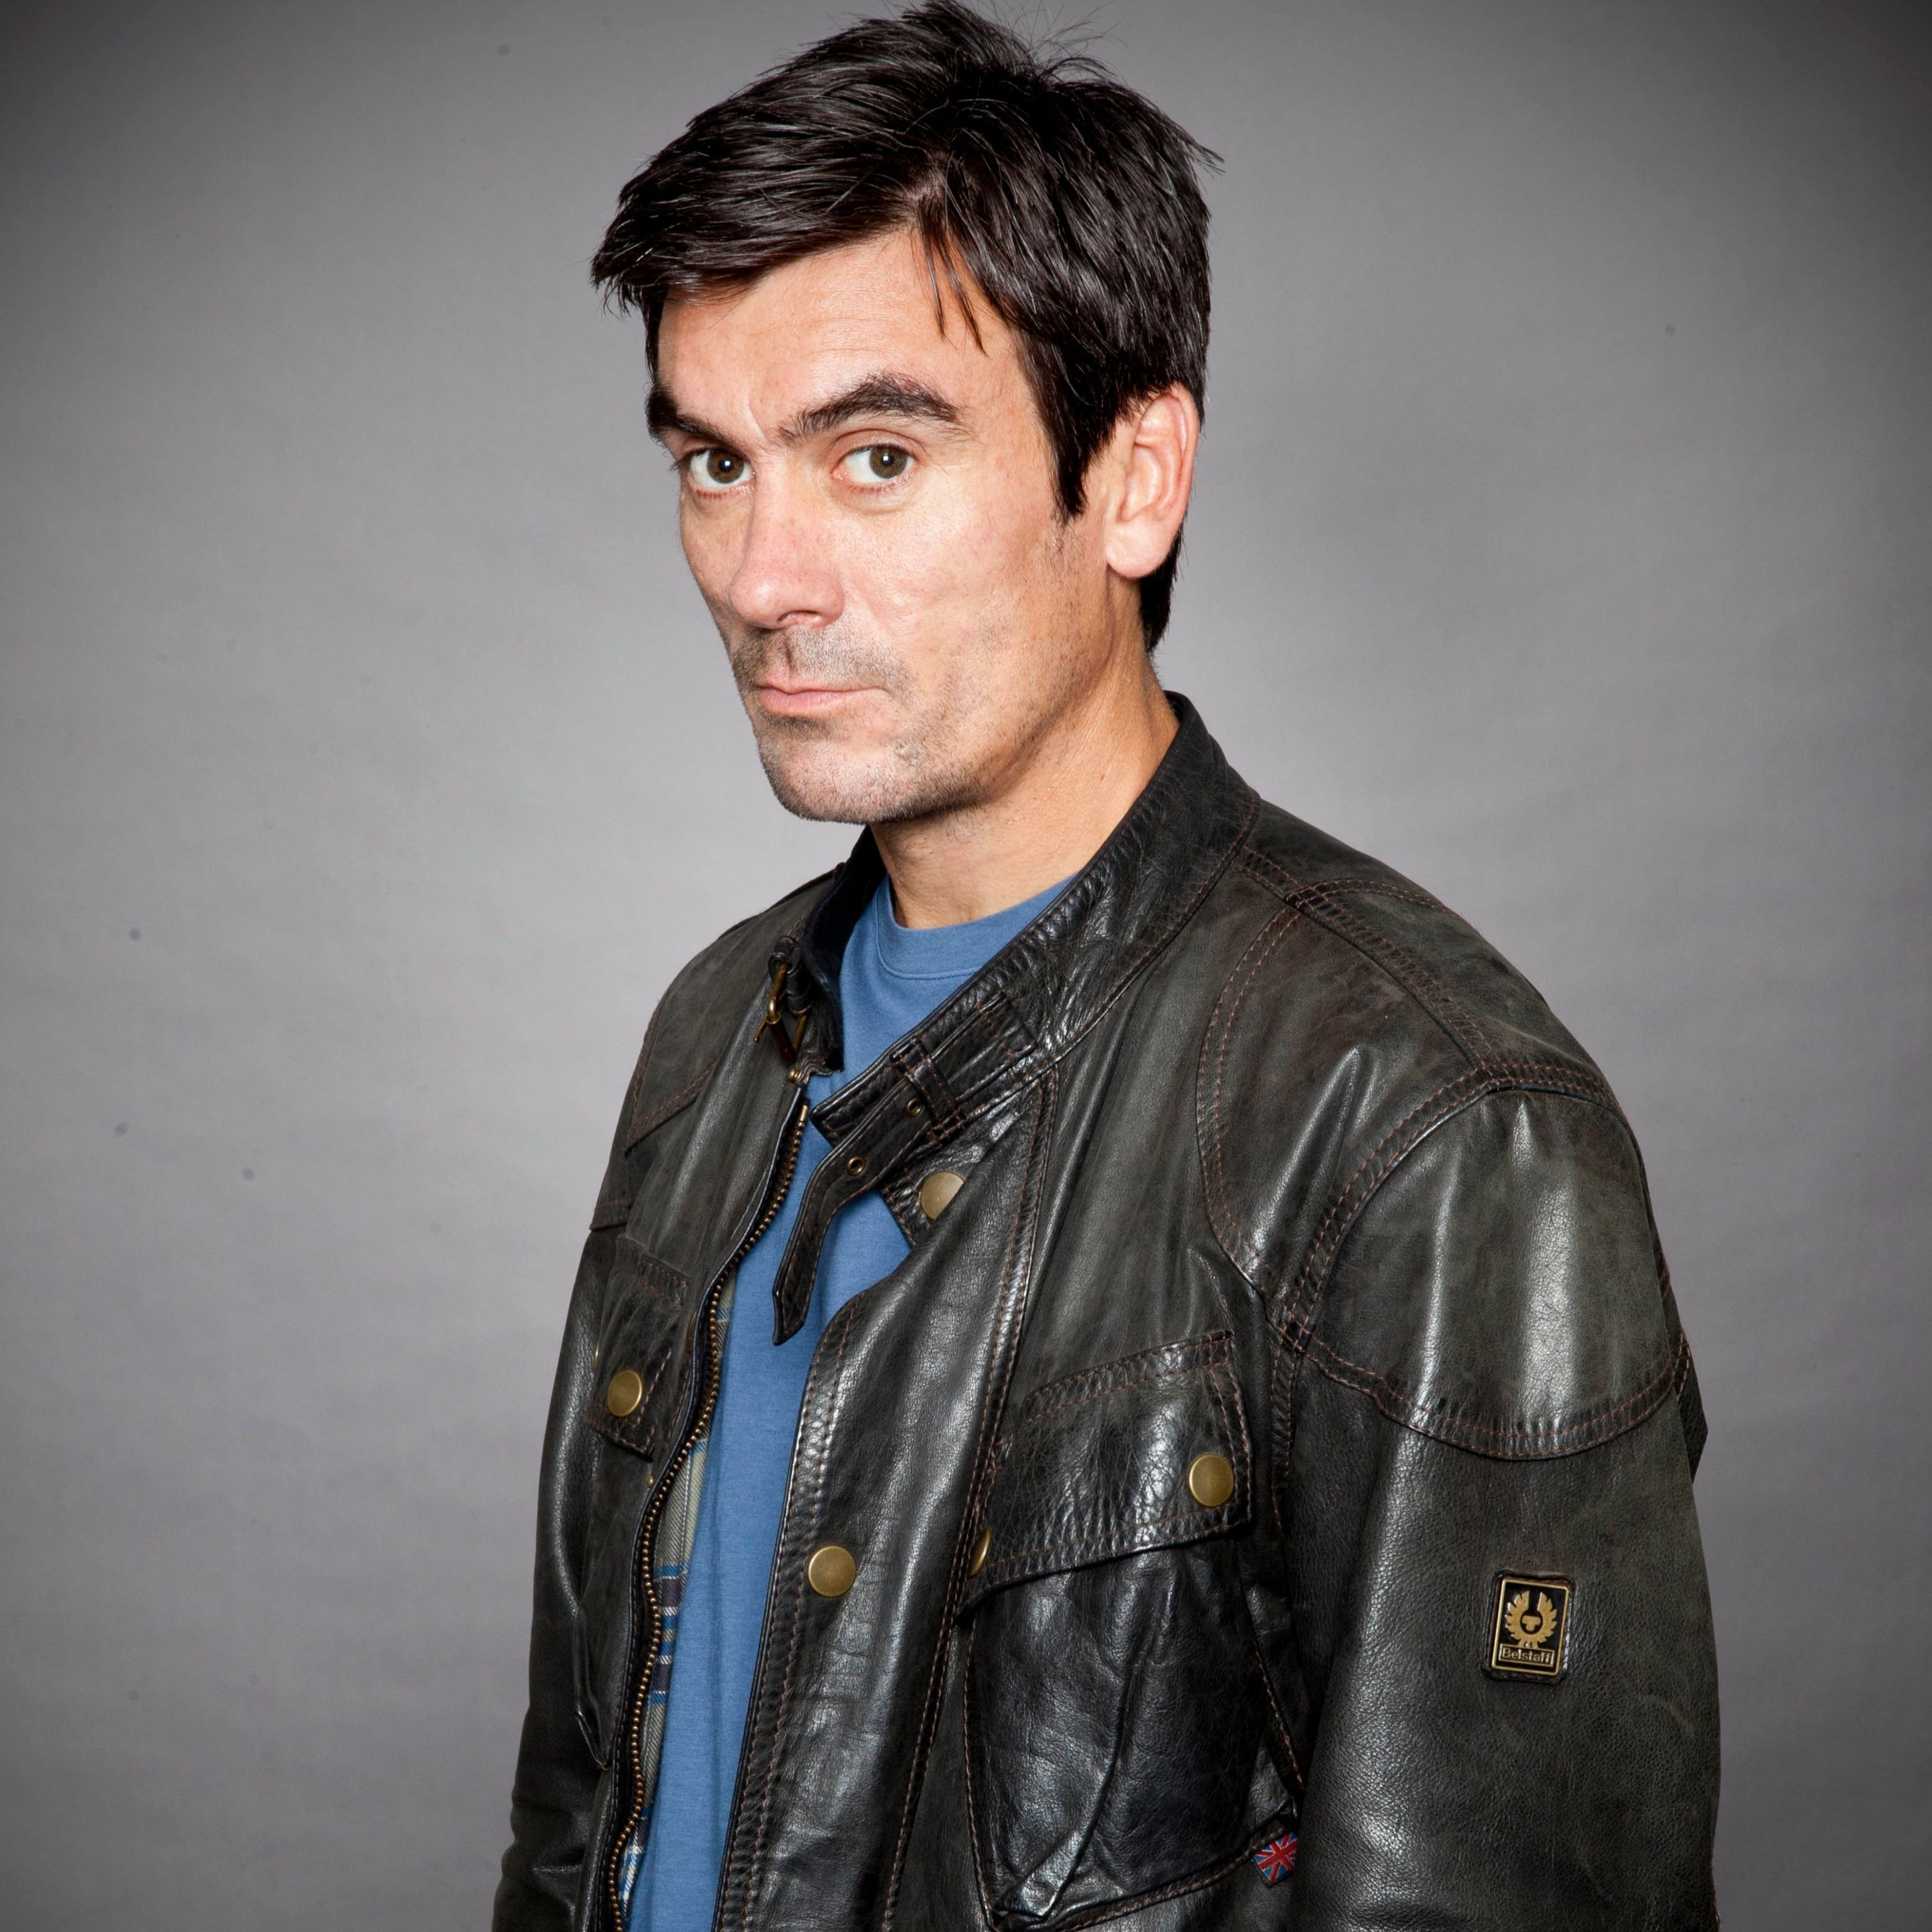 Emmerdale's Cain Dingle makes a death threat as explosive week begins